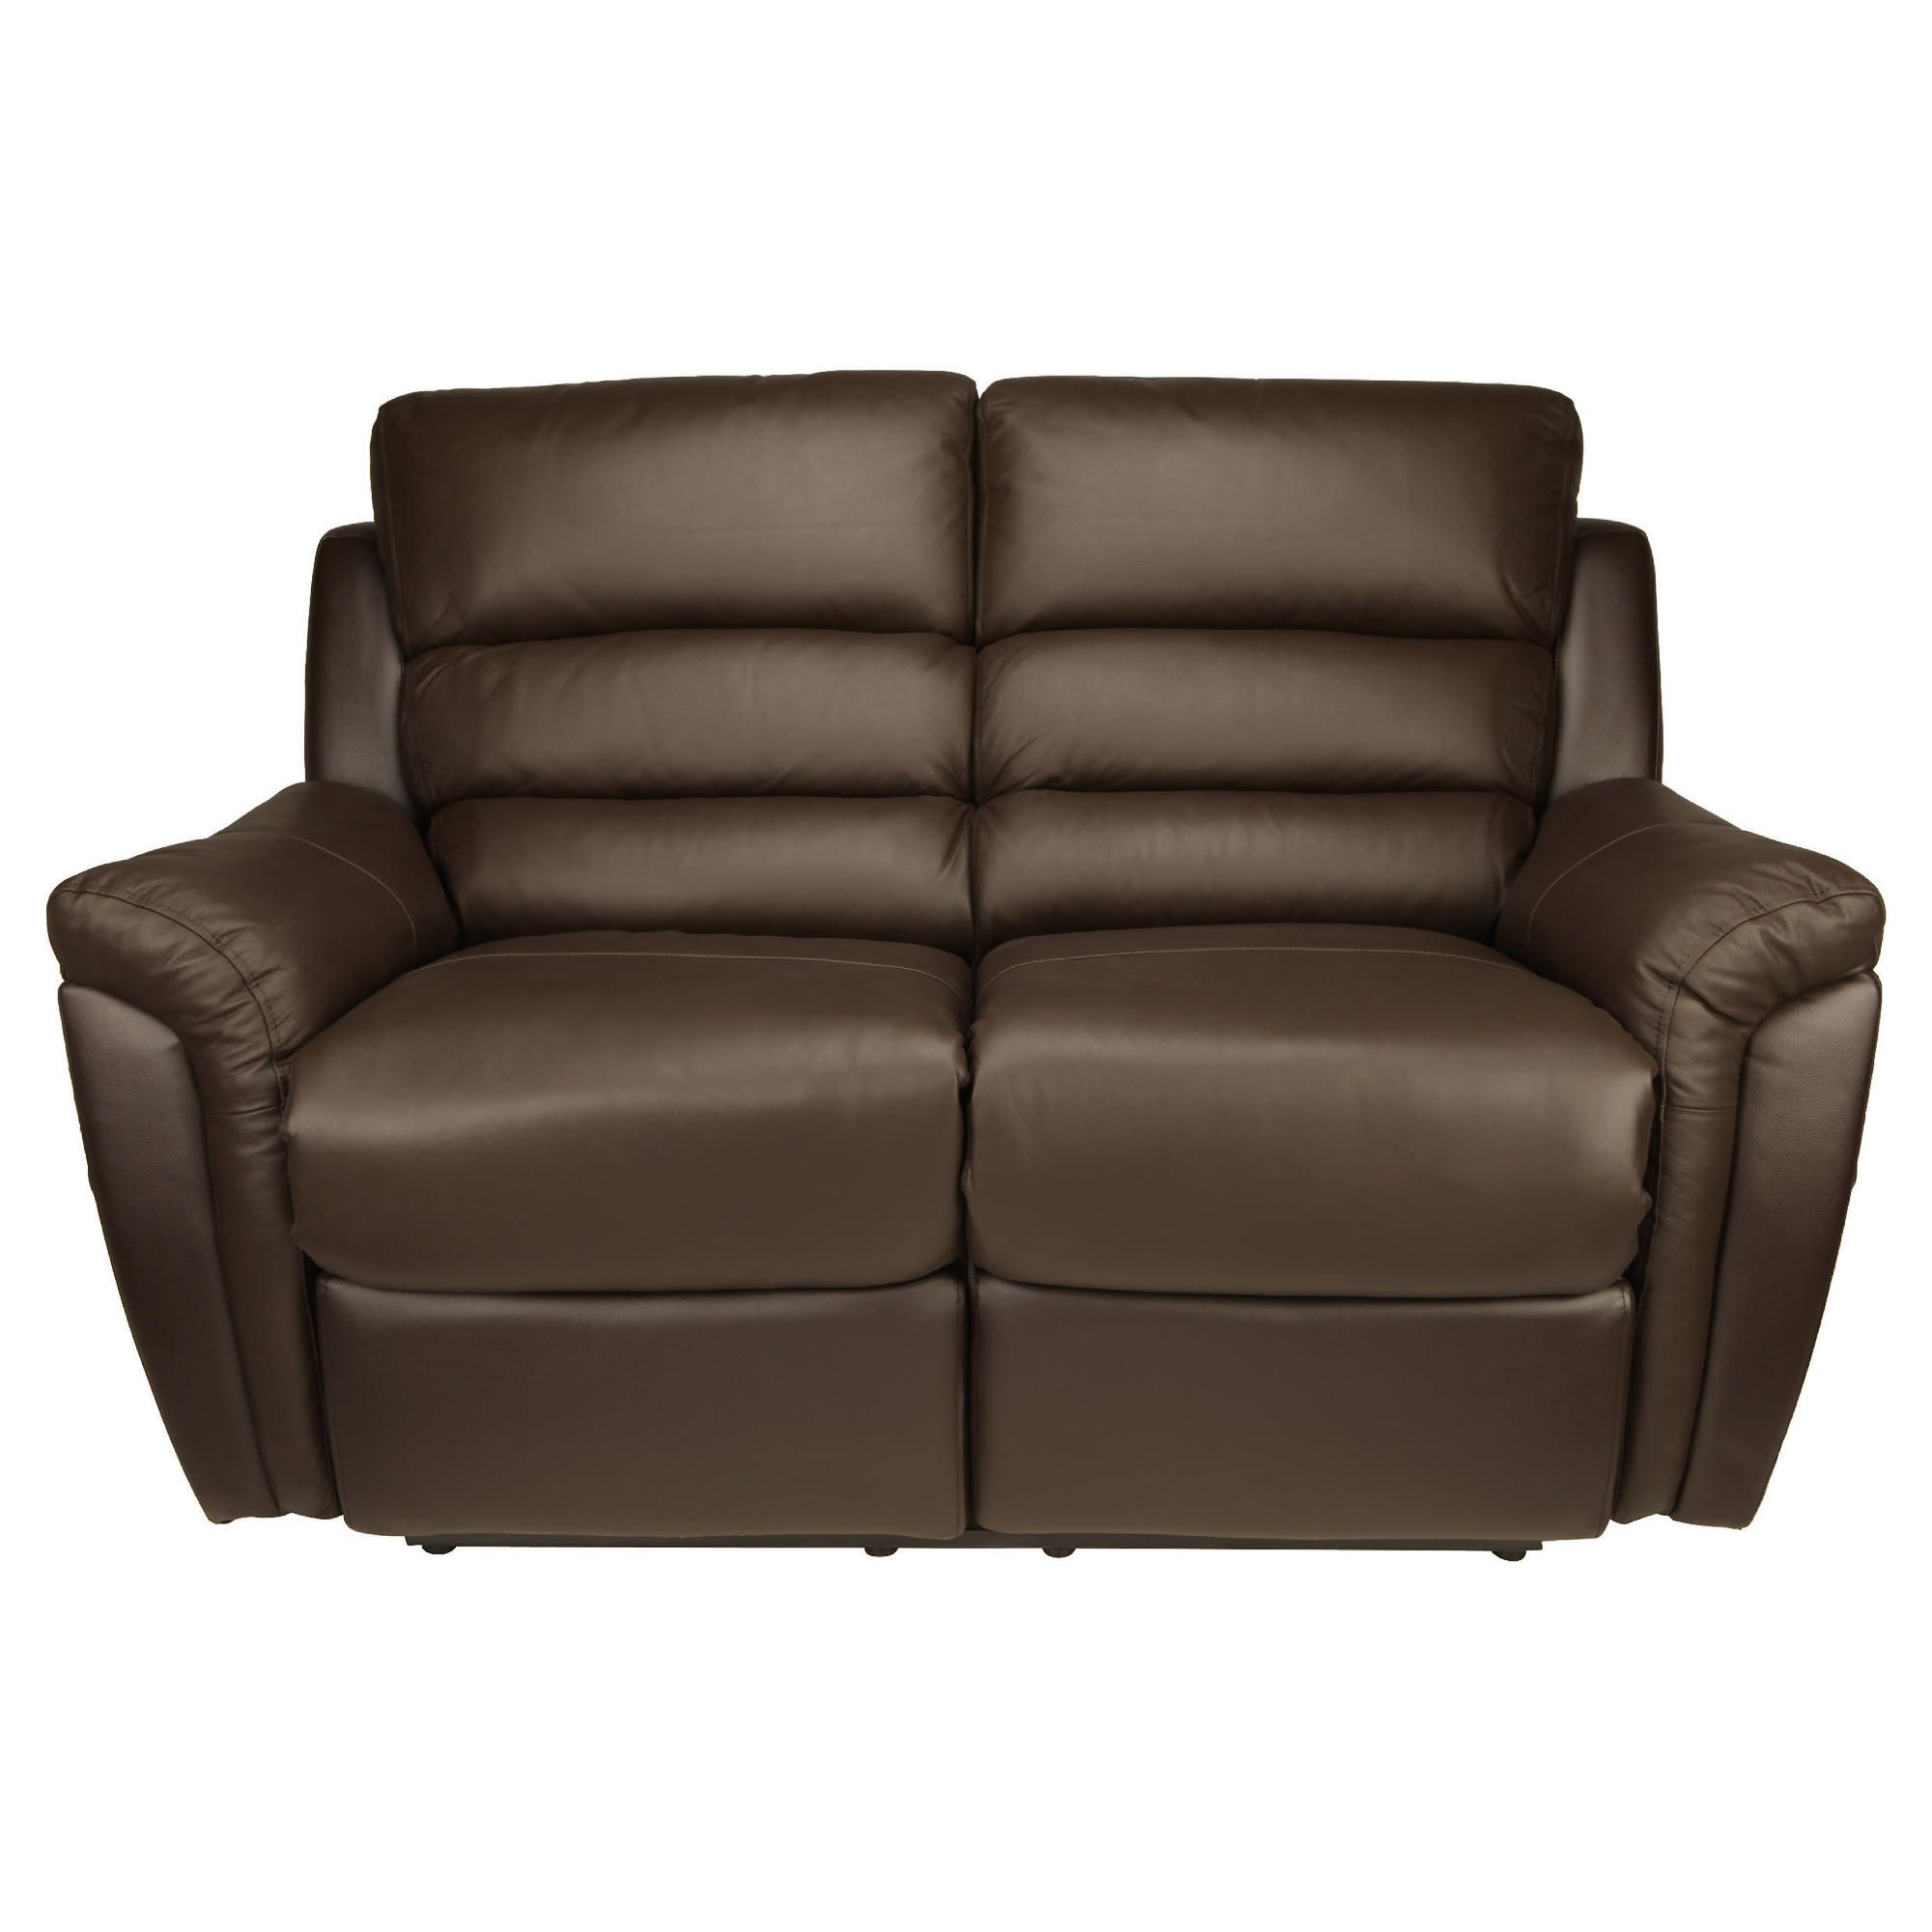 Chloe Small Recliner Sofa Leather, Brown at Tescos Direct